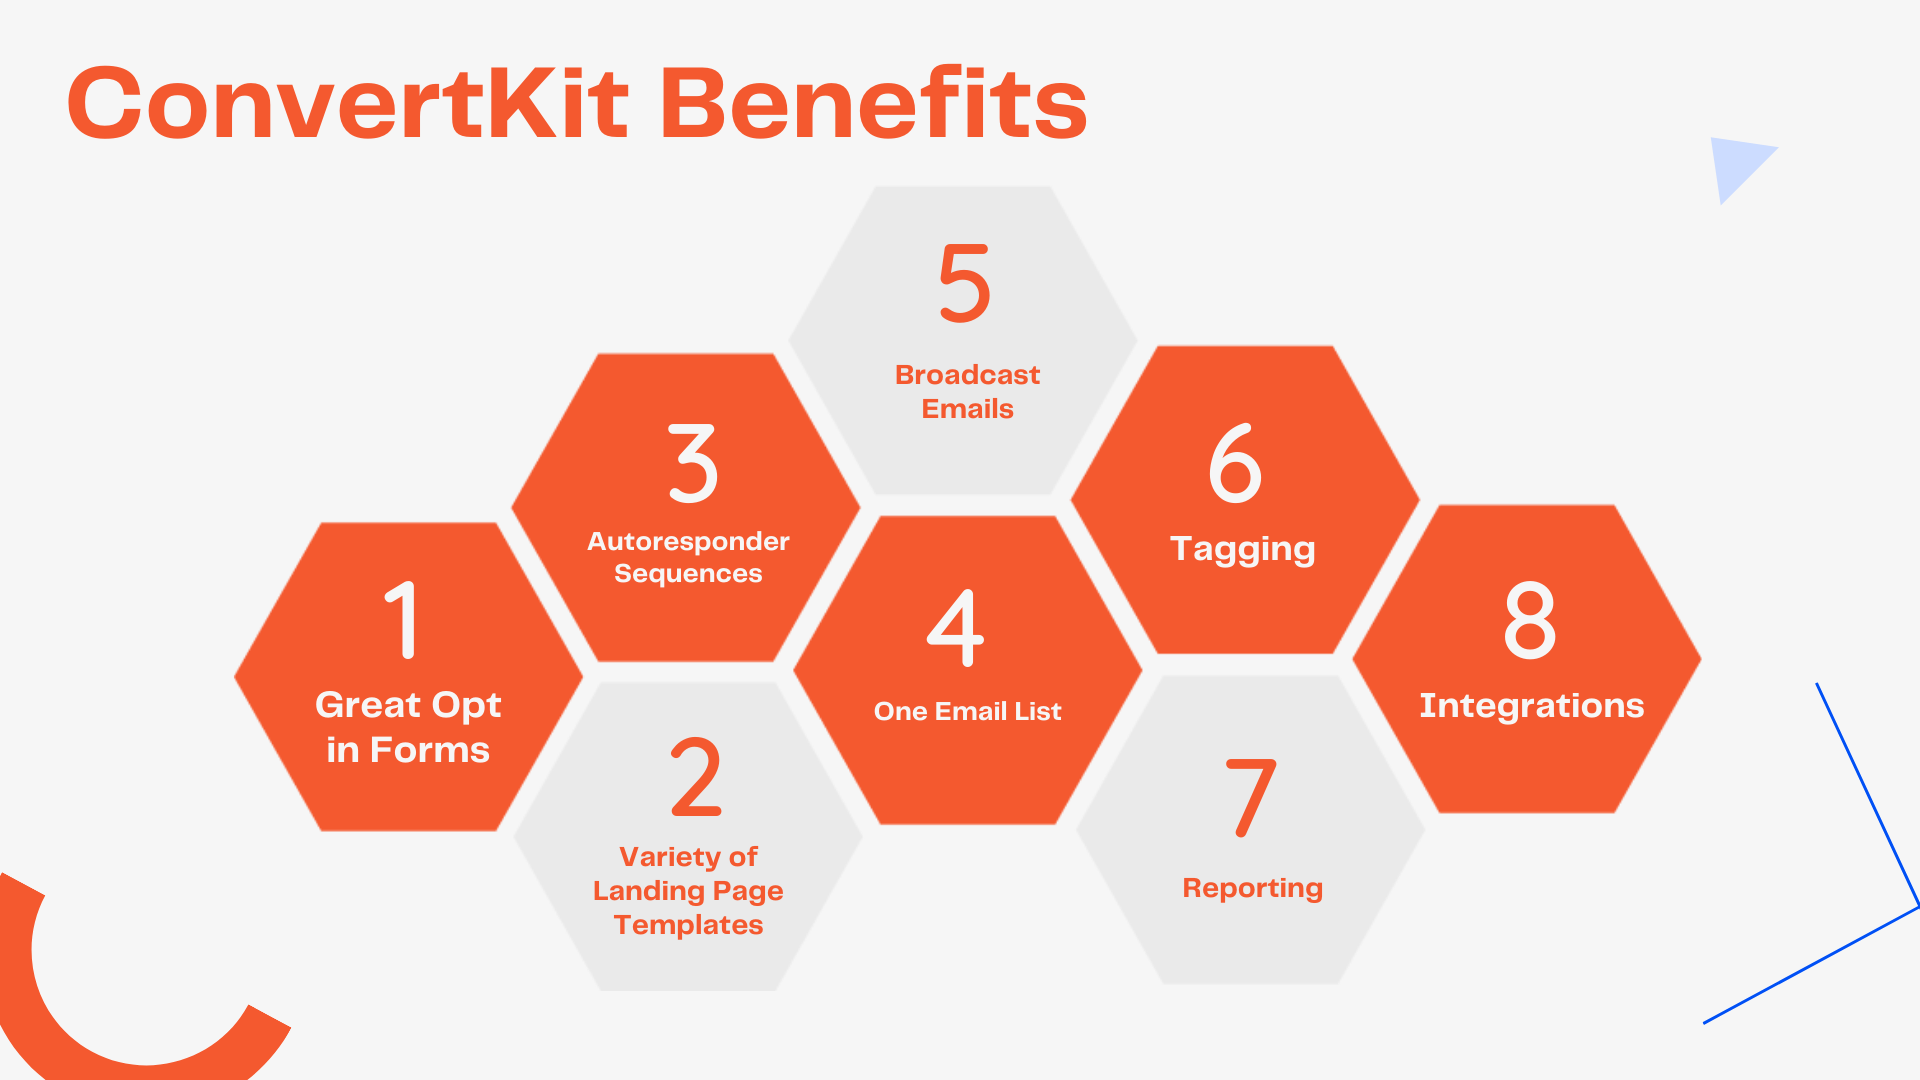 CovertKit Benefits Infographic (1. Great Opt in Forms, 2. Variety of Landing Page Templates 3. Autoresponder Sequences 4. One List 5. Broadcast Emails 6. Tagging 7. Reporting 8. Integrations